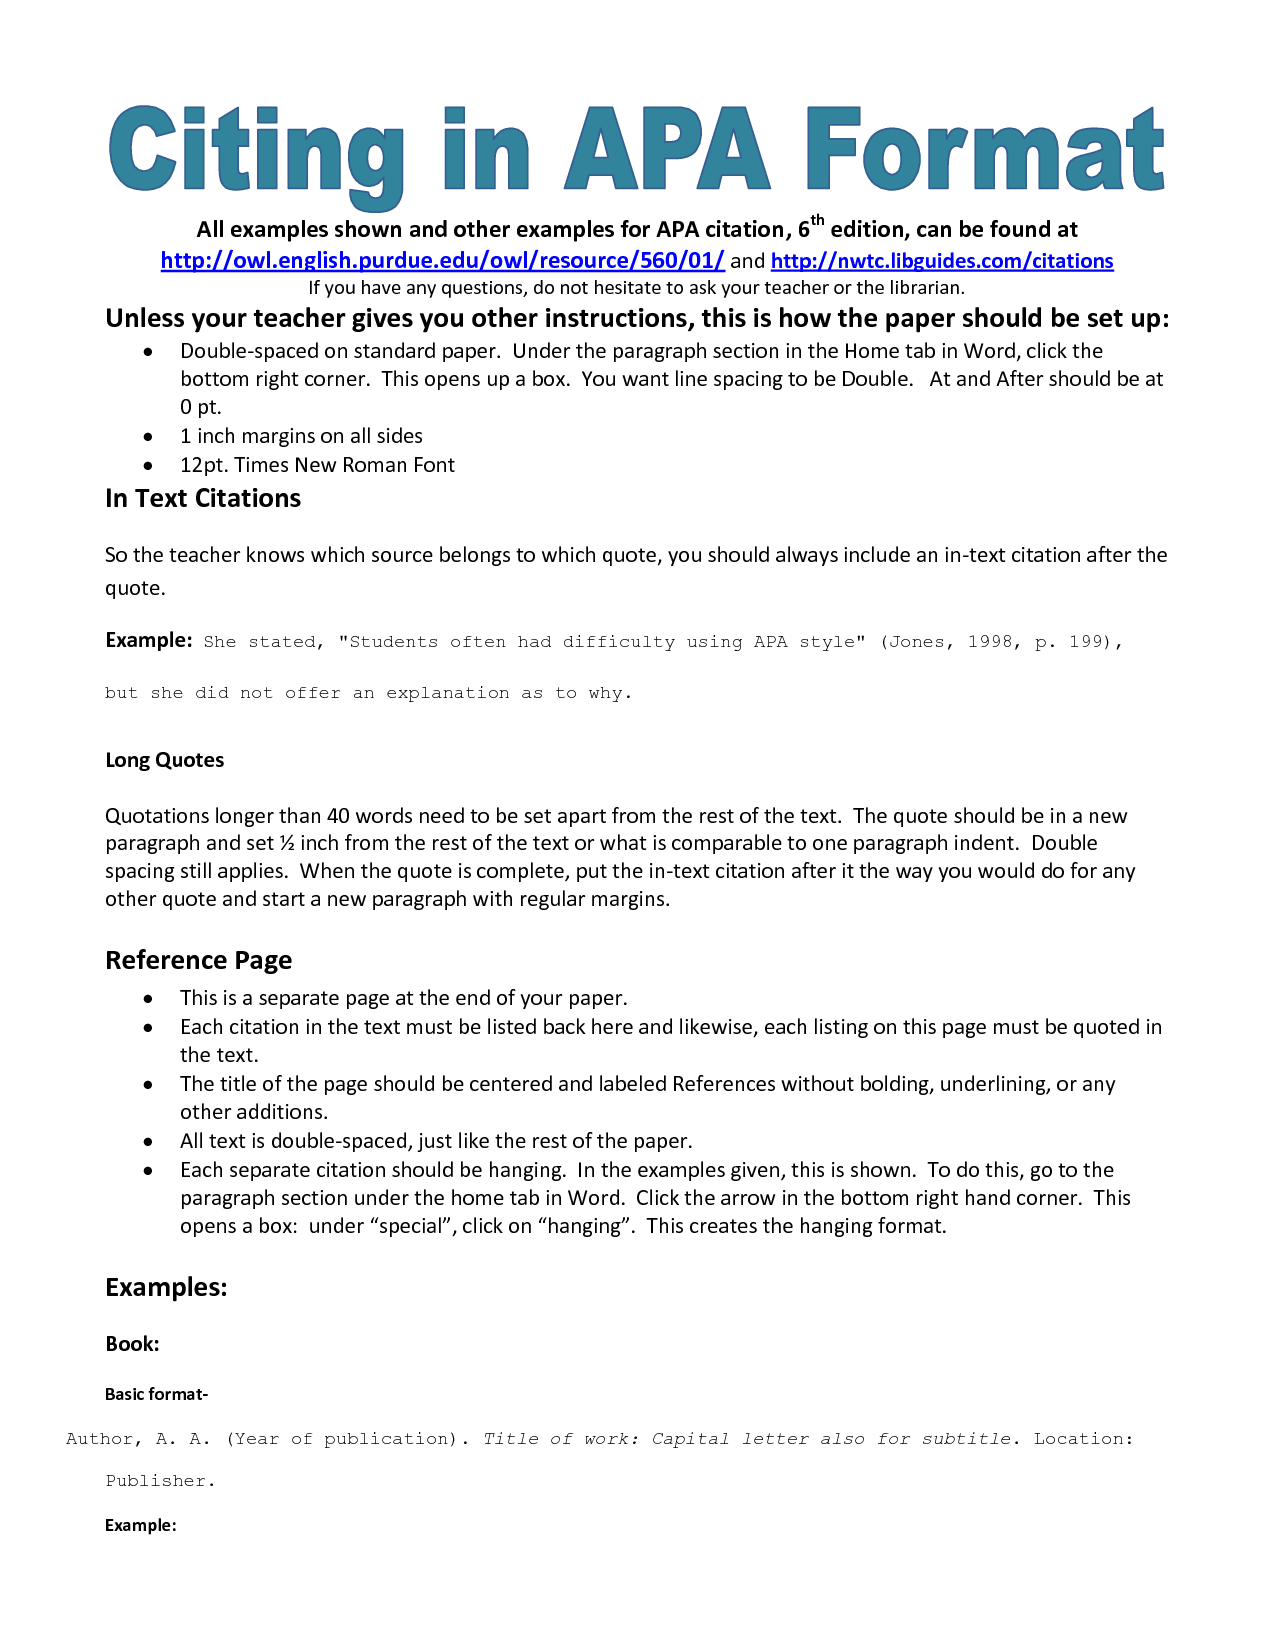 Essays About Science  Compare And Contrast High School And College Essay also Diwali Essay In English Pin By Karen Sue Davis On Wgu  Apa Essay Apa Style Paper  Example Of Thesis Statement For Argumentative Essay